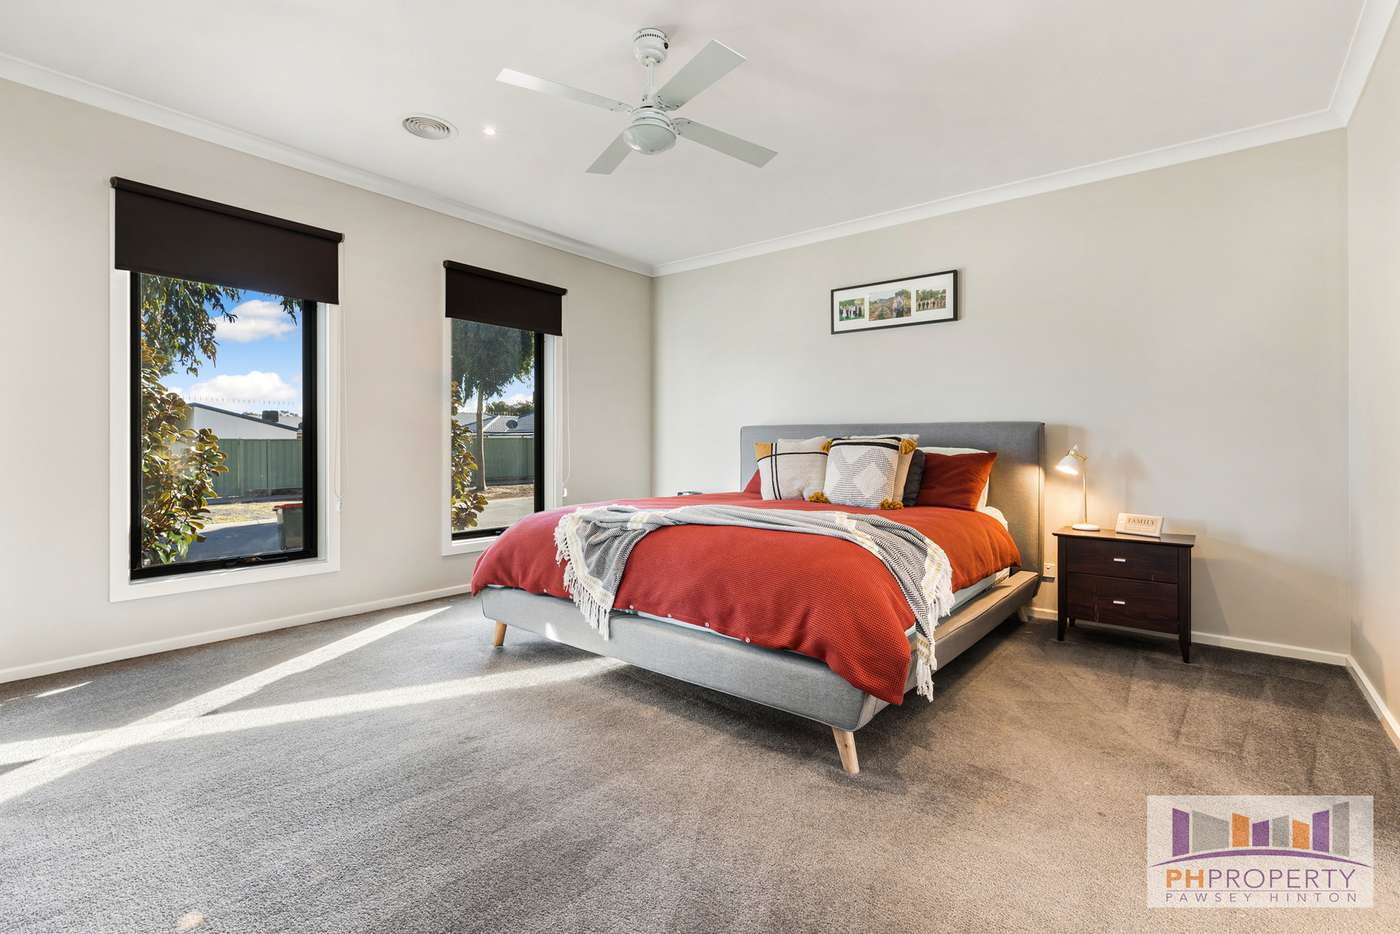 Sixth view of Homely house listing, 4 Anteah Road, Maiden Gully VIC 3551